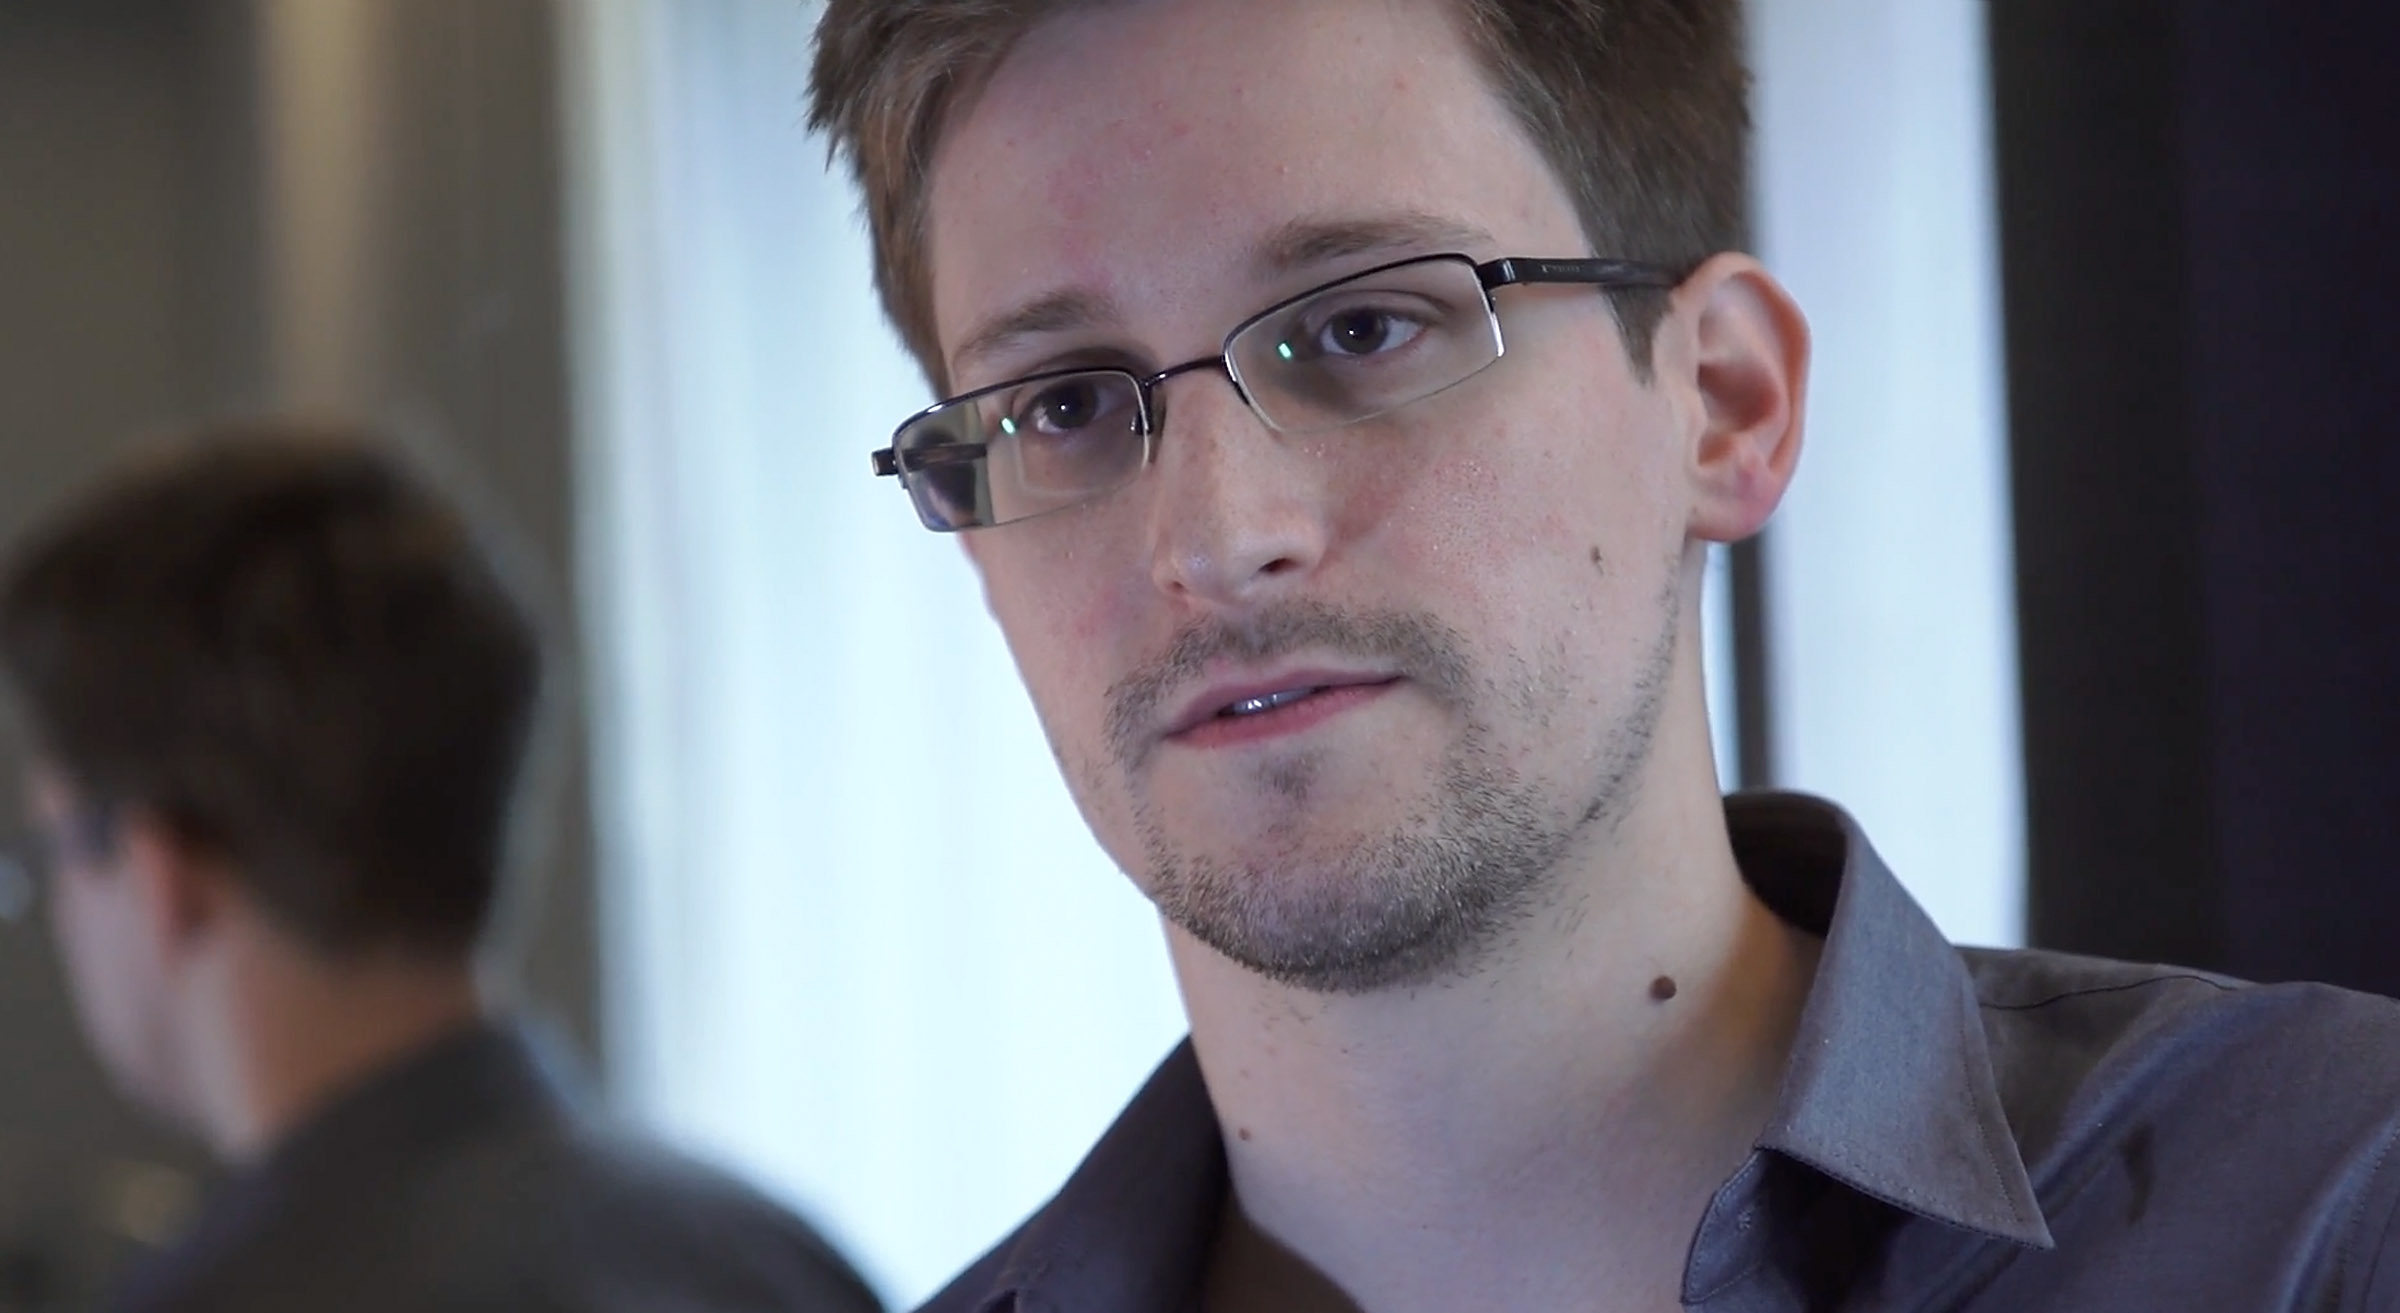 Edward Snowden agrees to give up more than $5 million from book and speeches